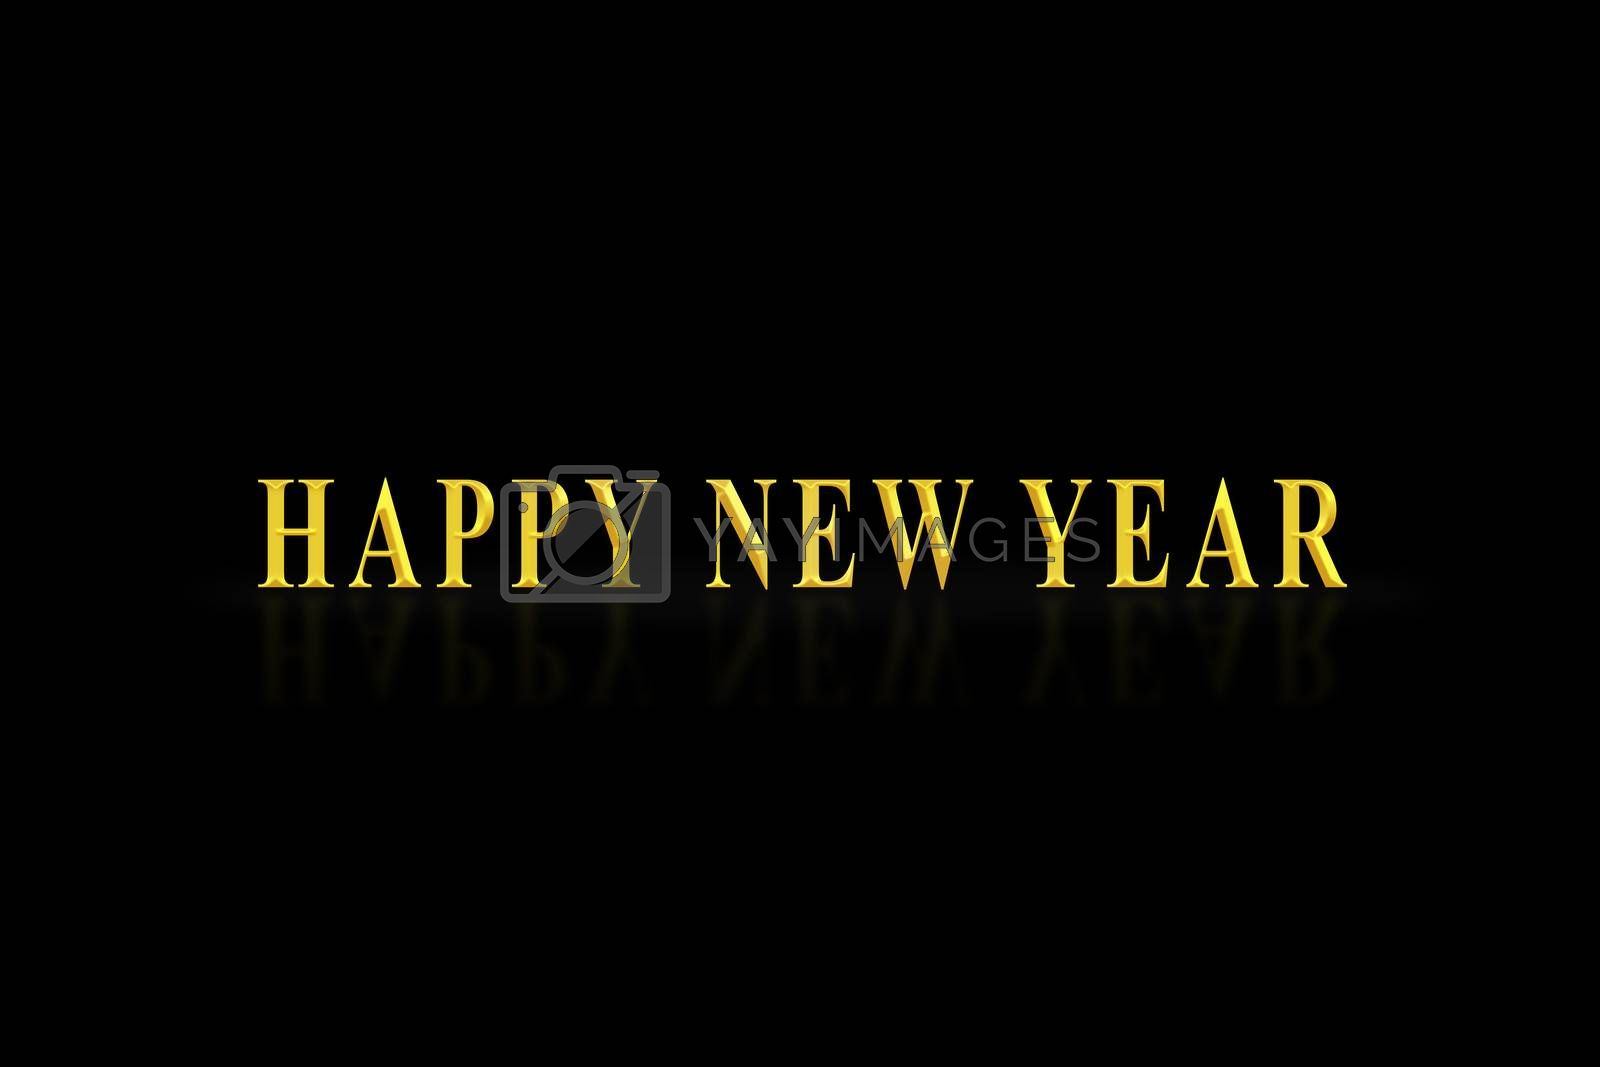 The inscription happy NEW YEAR in gold letters, black background